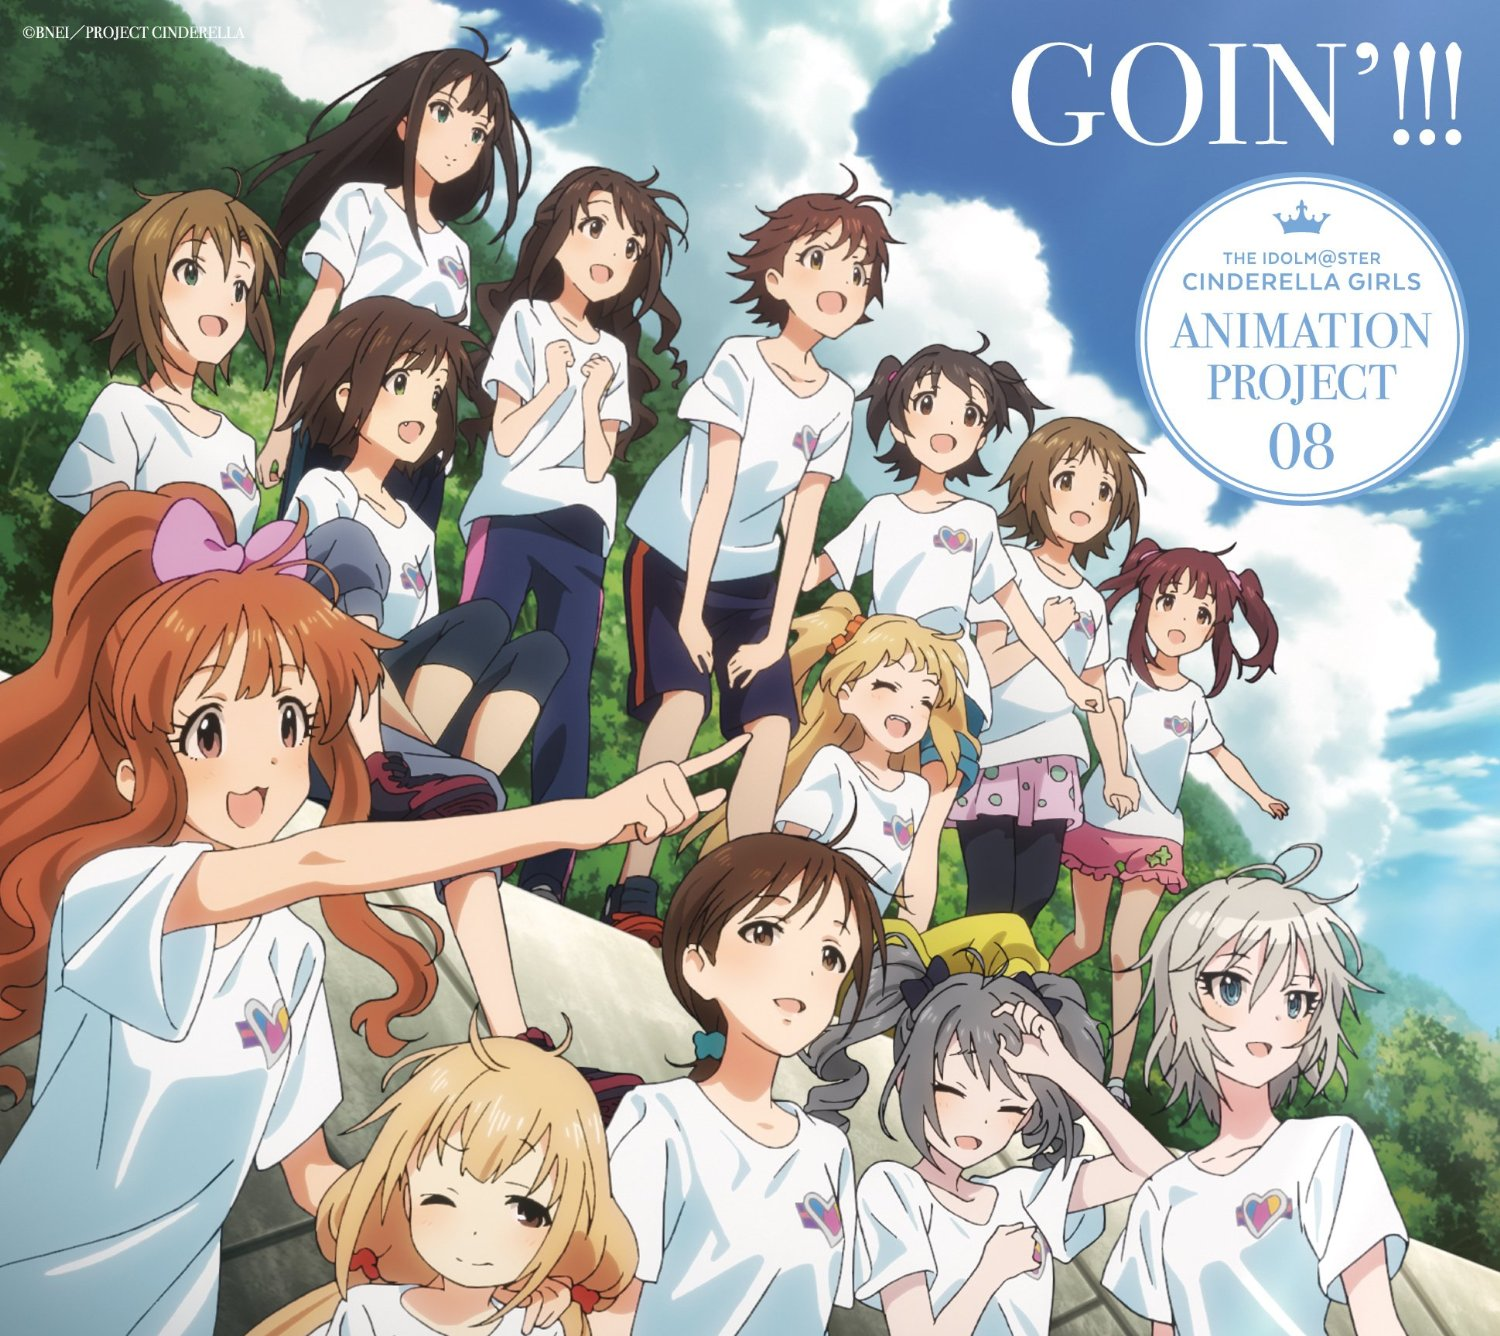 GOIN'!! - CINDERELLA PROJECT 가사